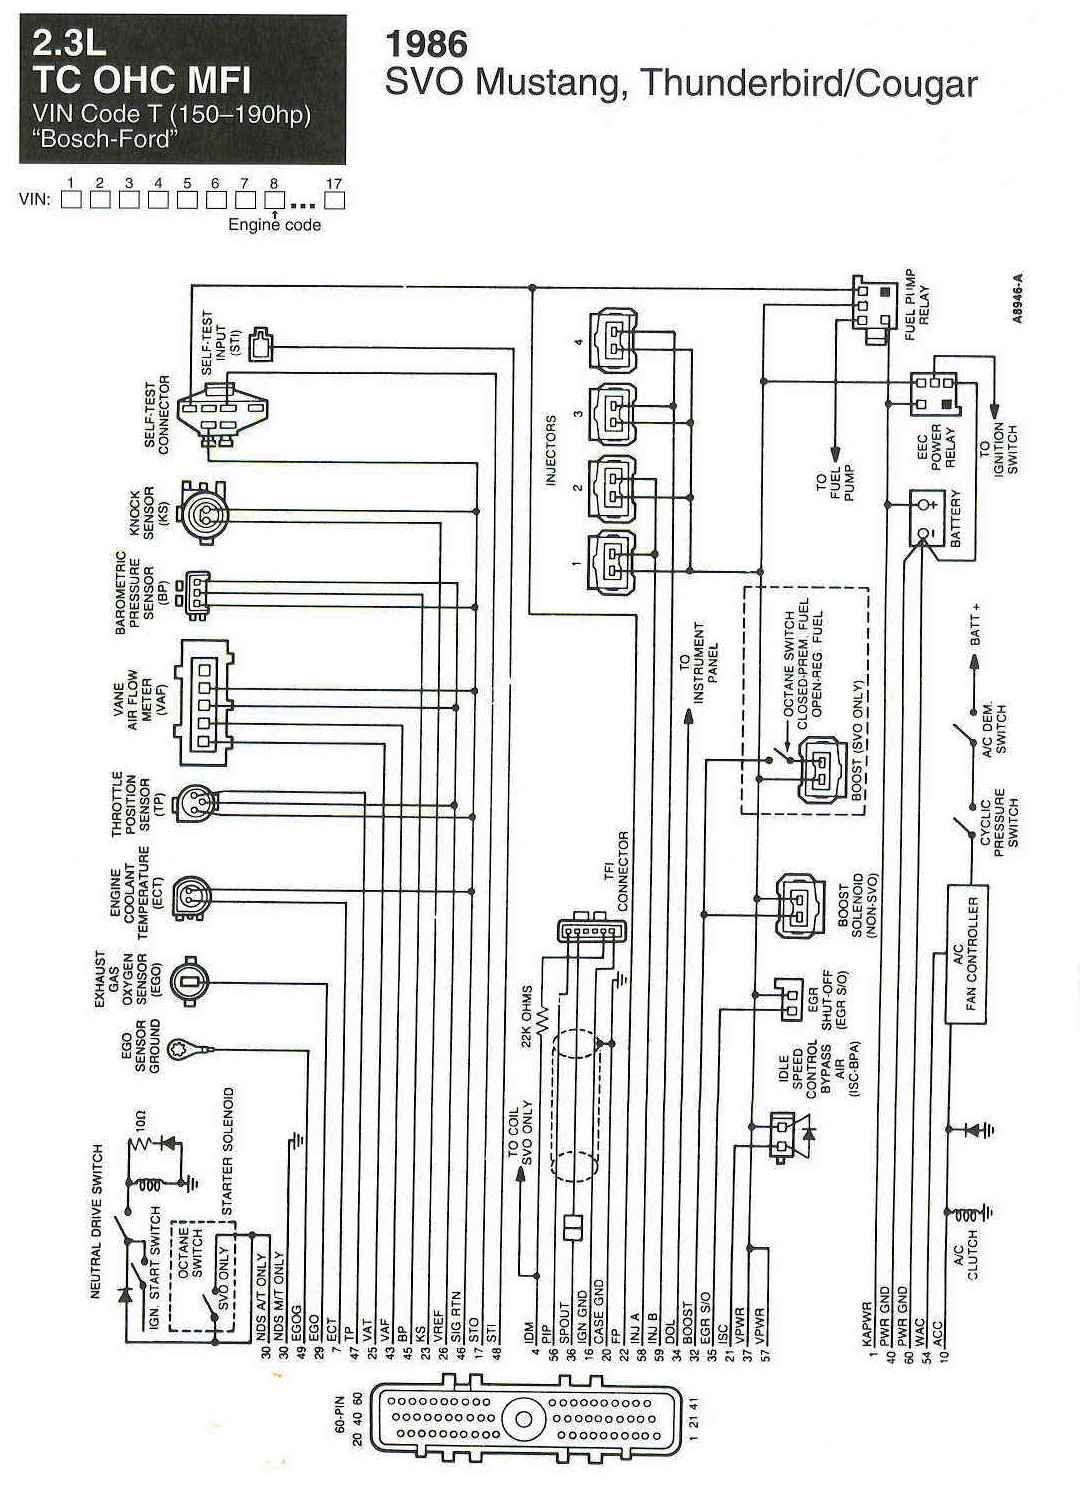 84 Ford Thunderbird Wiring Diagram Great Design Of For 3000 Sel Diagrams Svo Mustang Forum Rh Allfordmustangs Com Starter